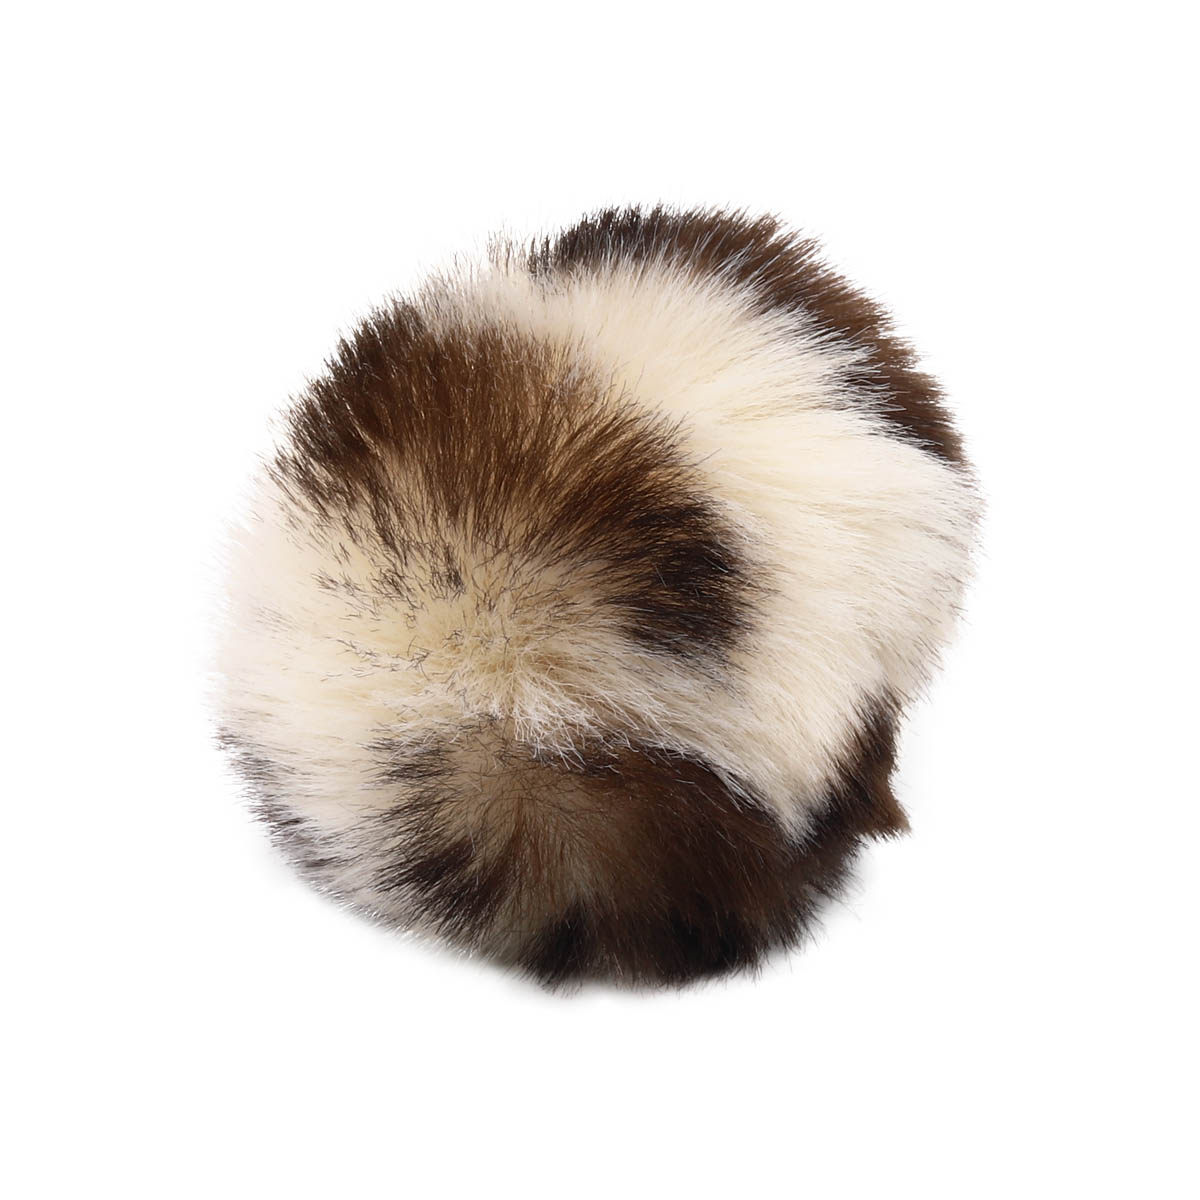 Ar528 Pompon Artificial Fur, Leopard, 5 Cm 2 Pcs/pack (white-brown)